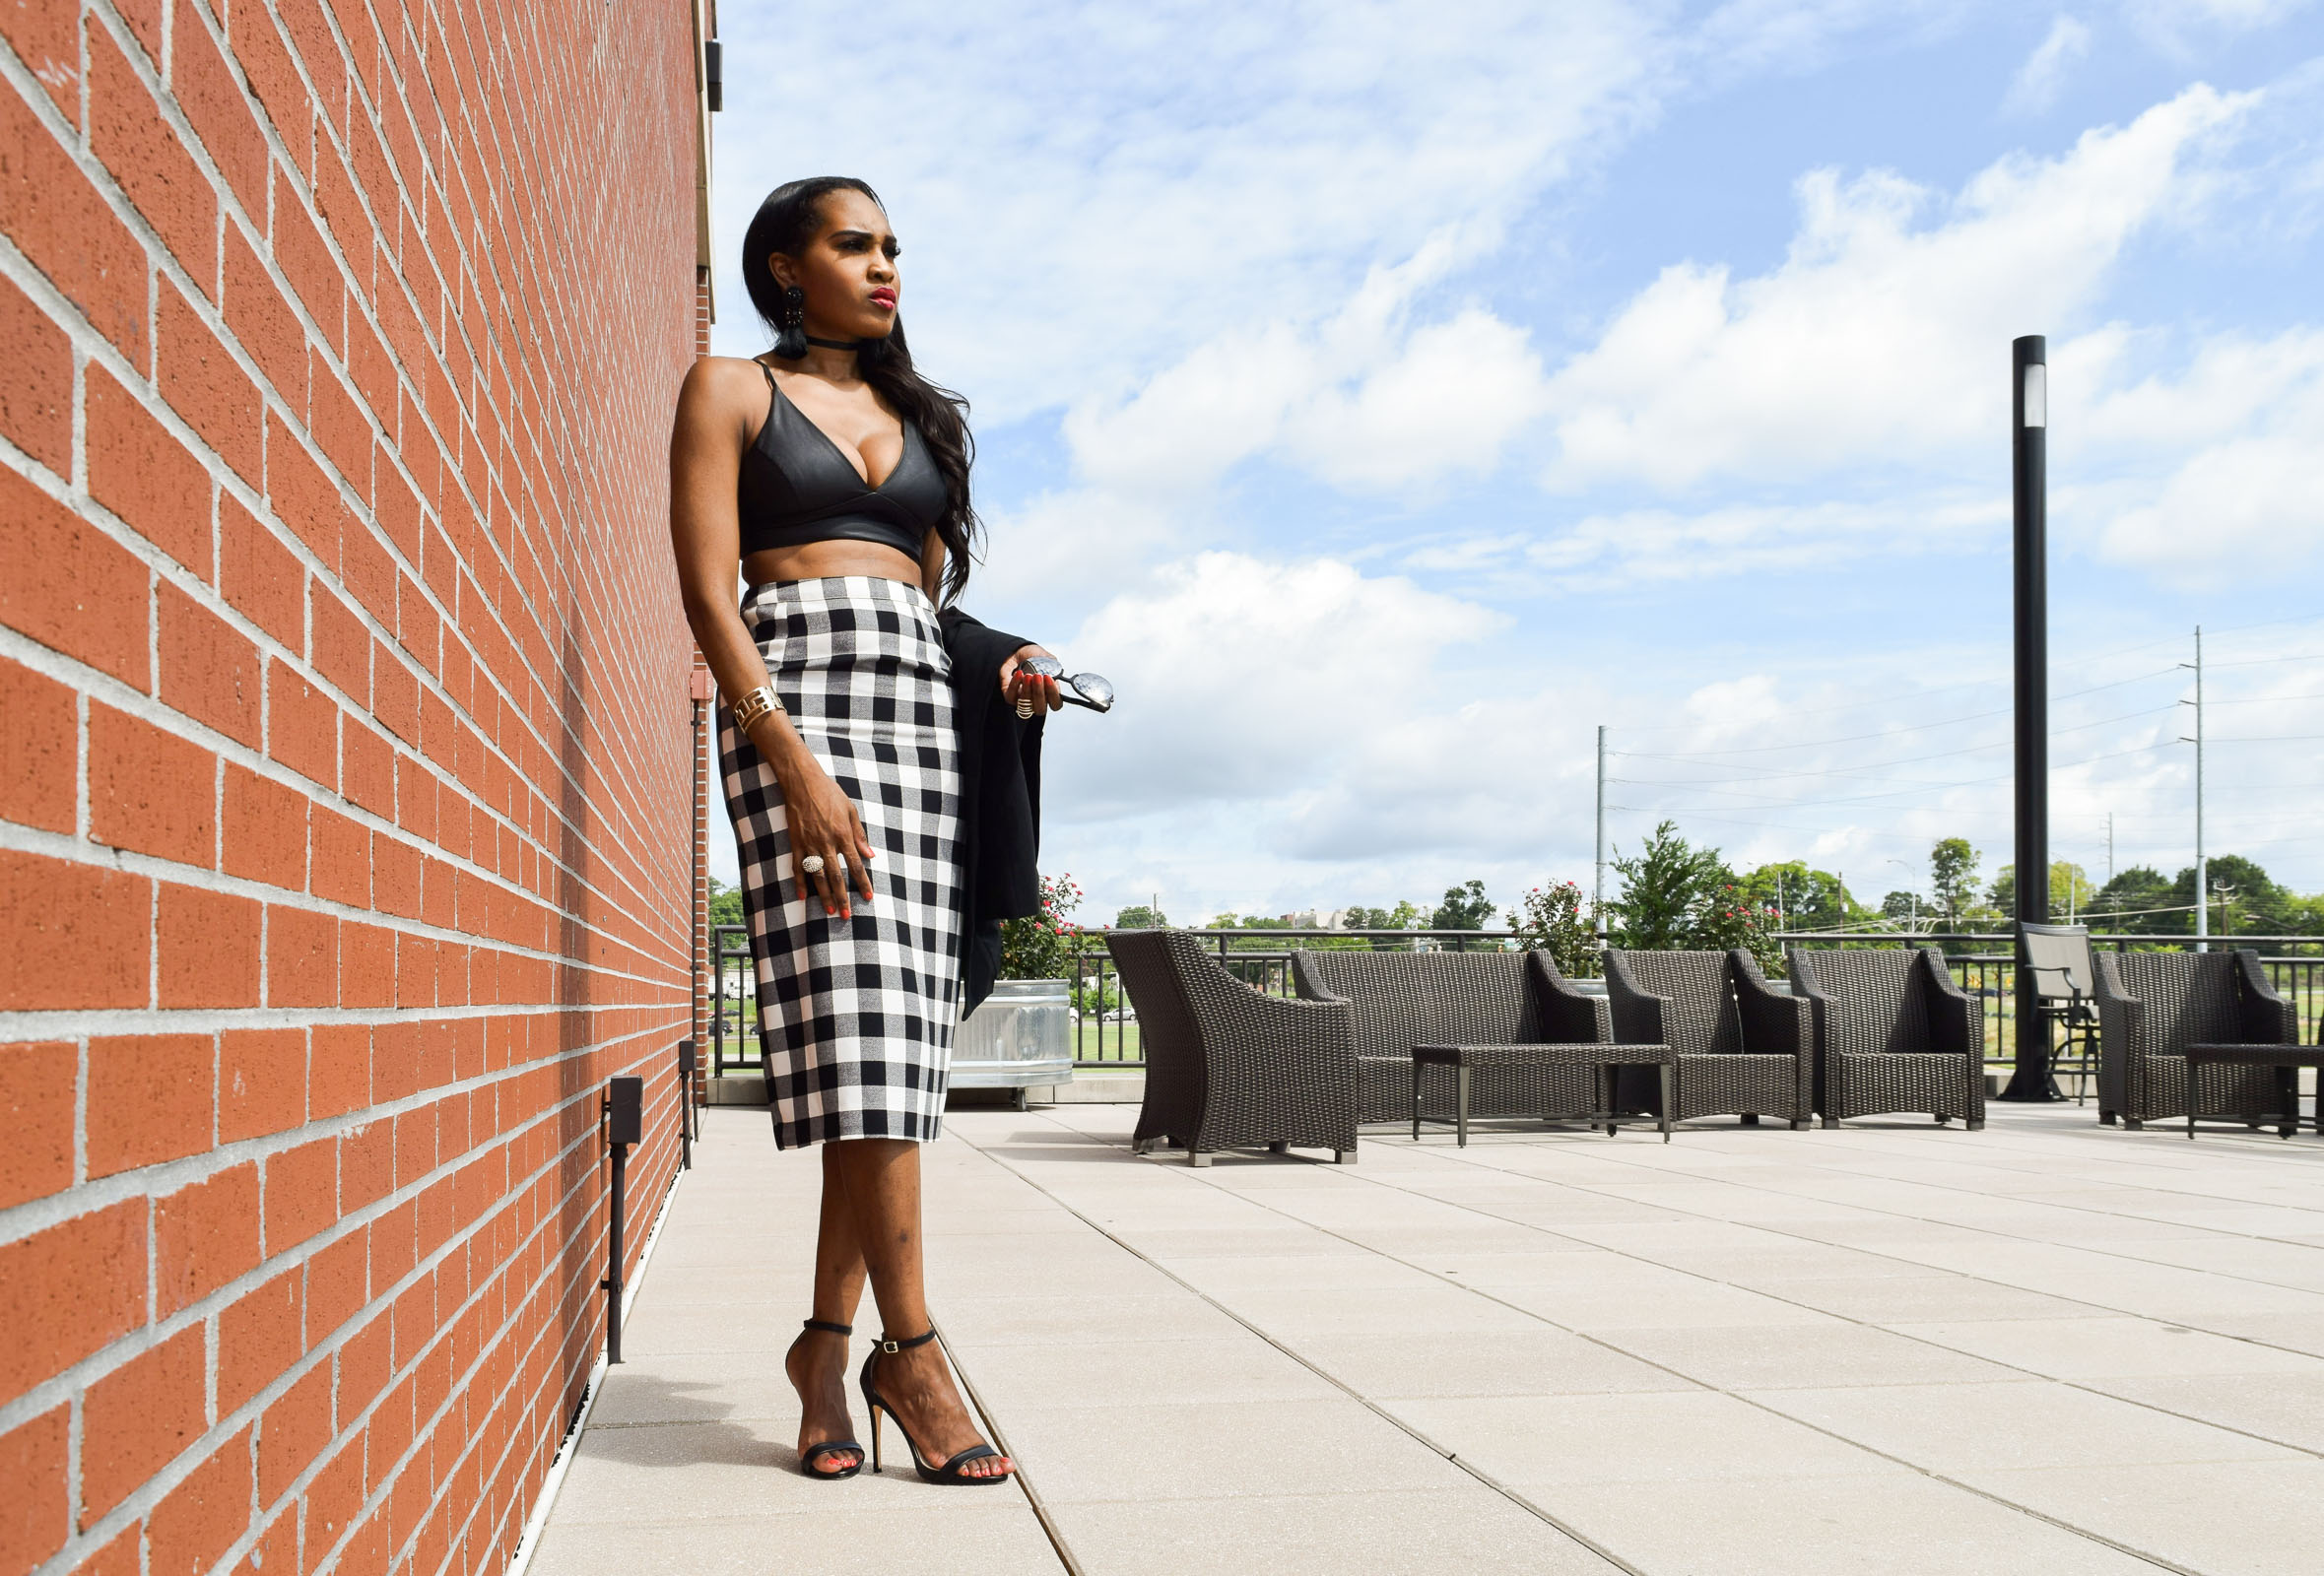 Style-Files-WhoWhatWear-Target-collection-black-white-gingham-pencil-skirt-forever-21-black-leather-bralette-top-justfab-catherina-black-ankle-strap-sandals-Target-Mossimo-vest-who-to-wear-gingham-OohLaLaBlog-16